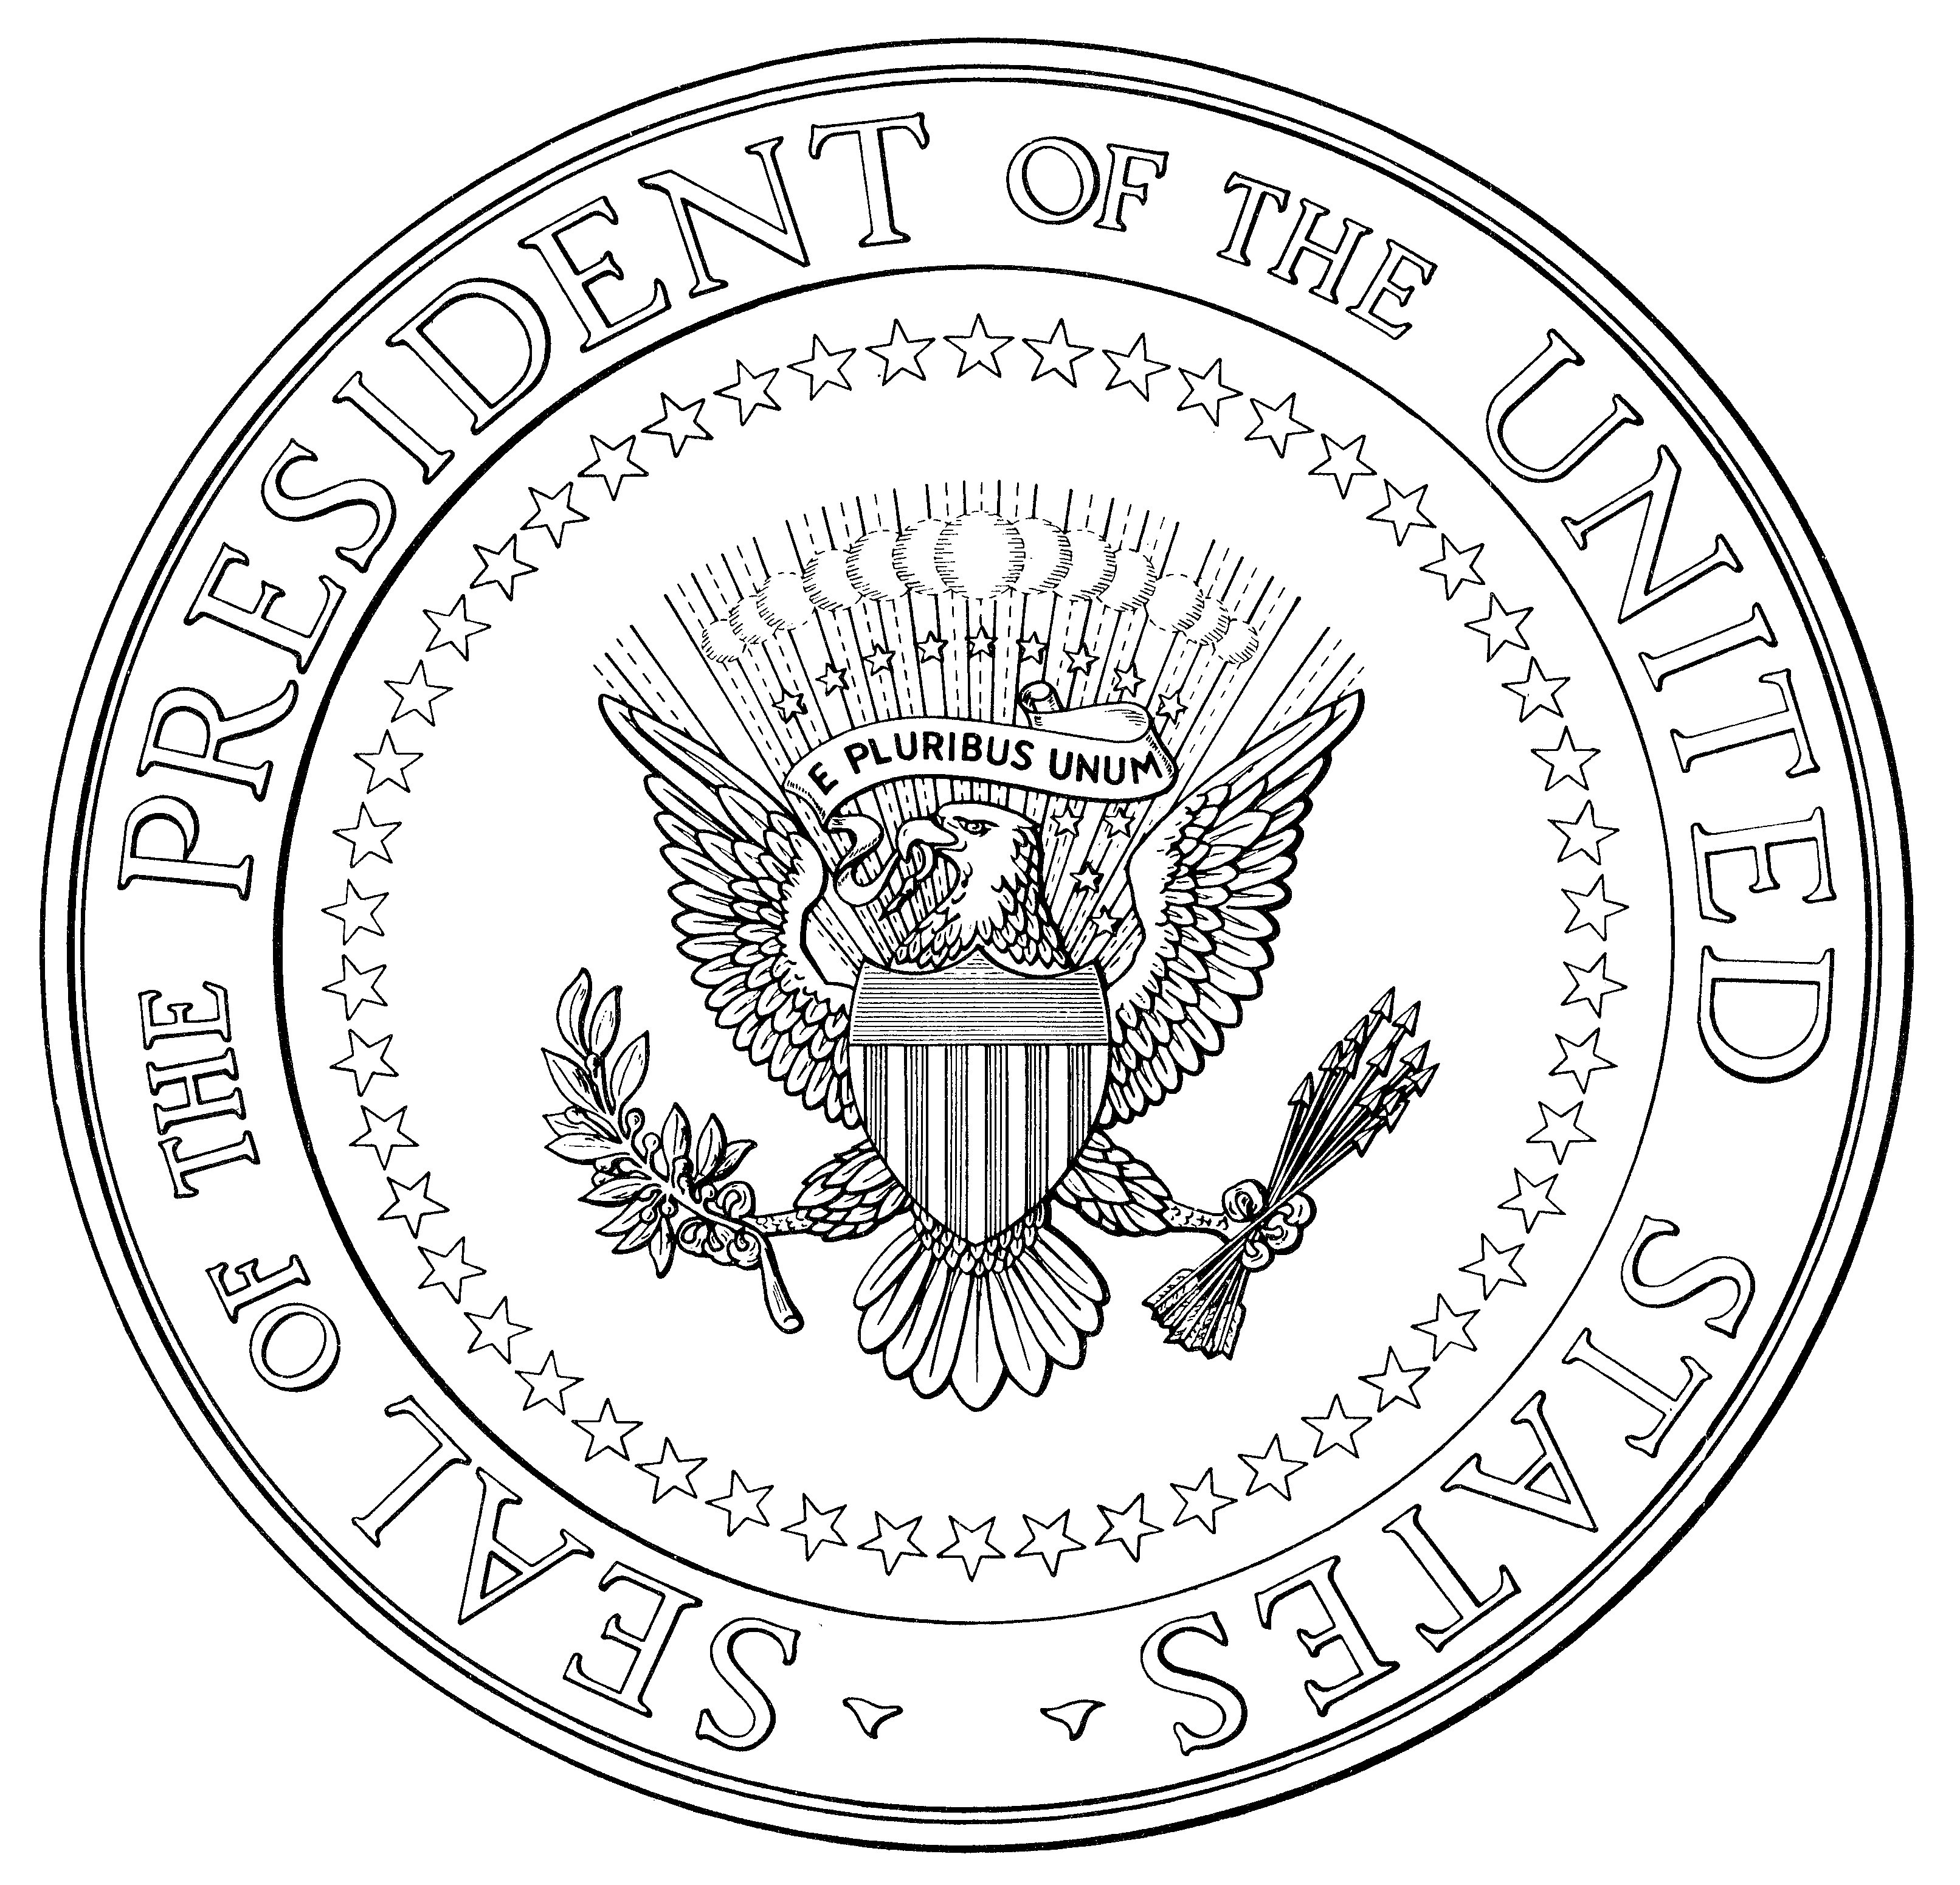 Trump Changes To Oval Office Seal Of The President Of The United States